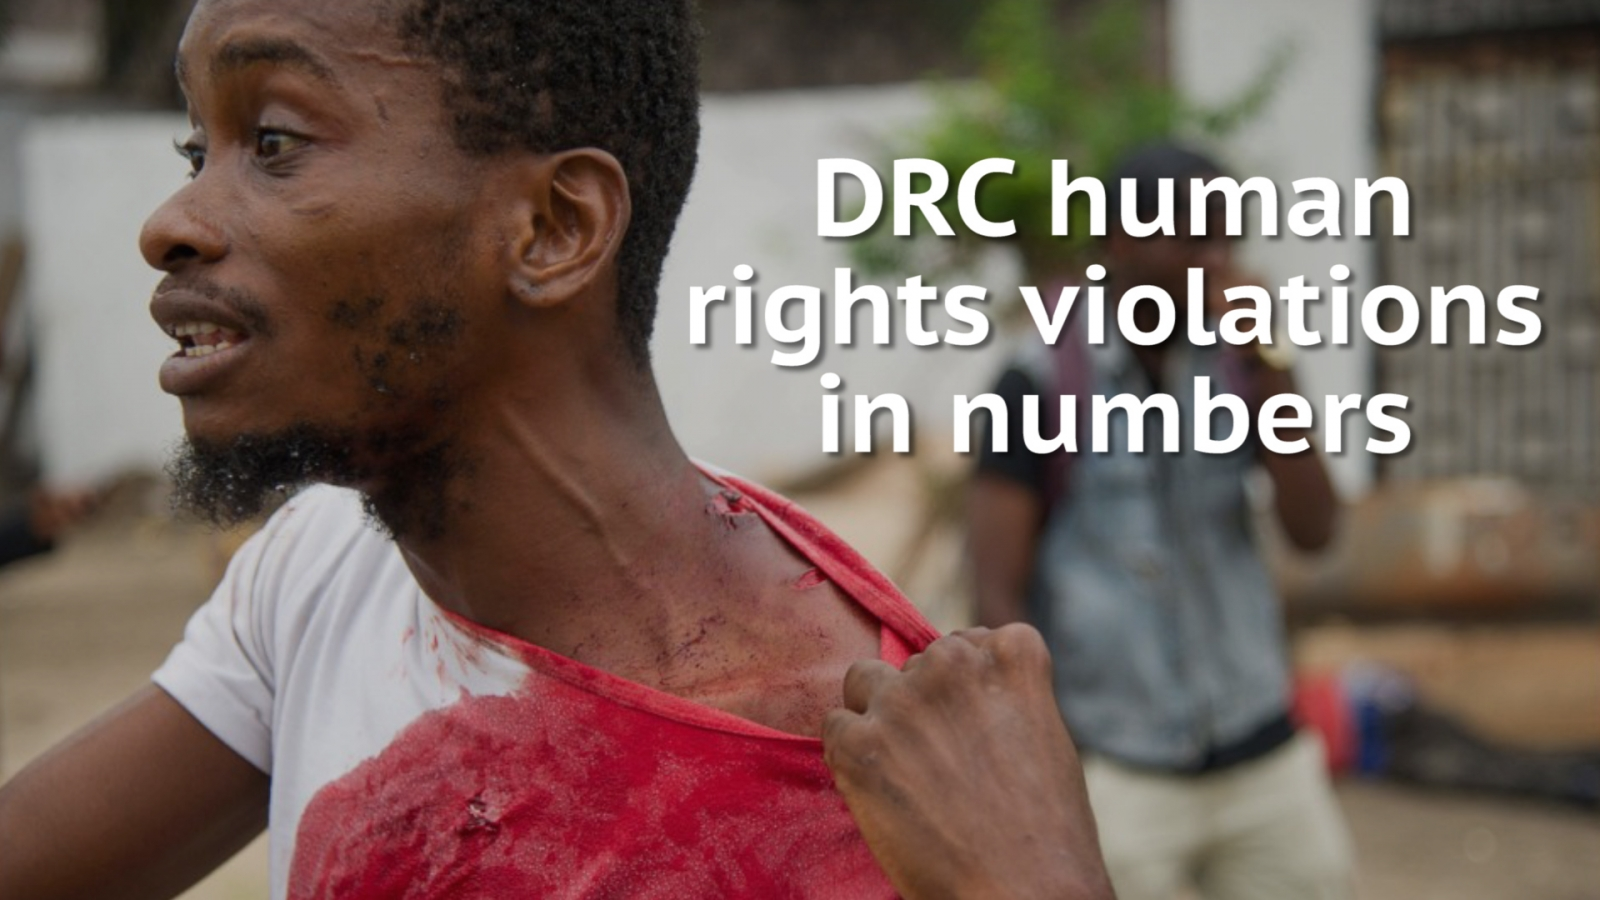 DRC human rights violations - in numbers